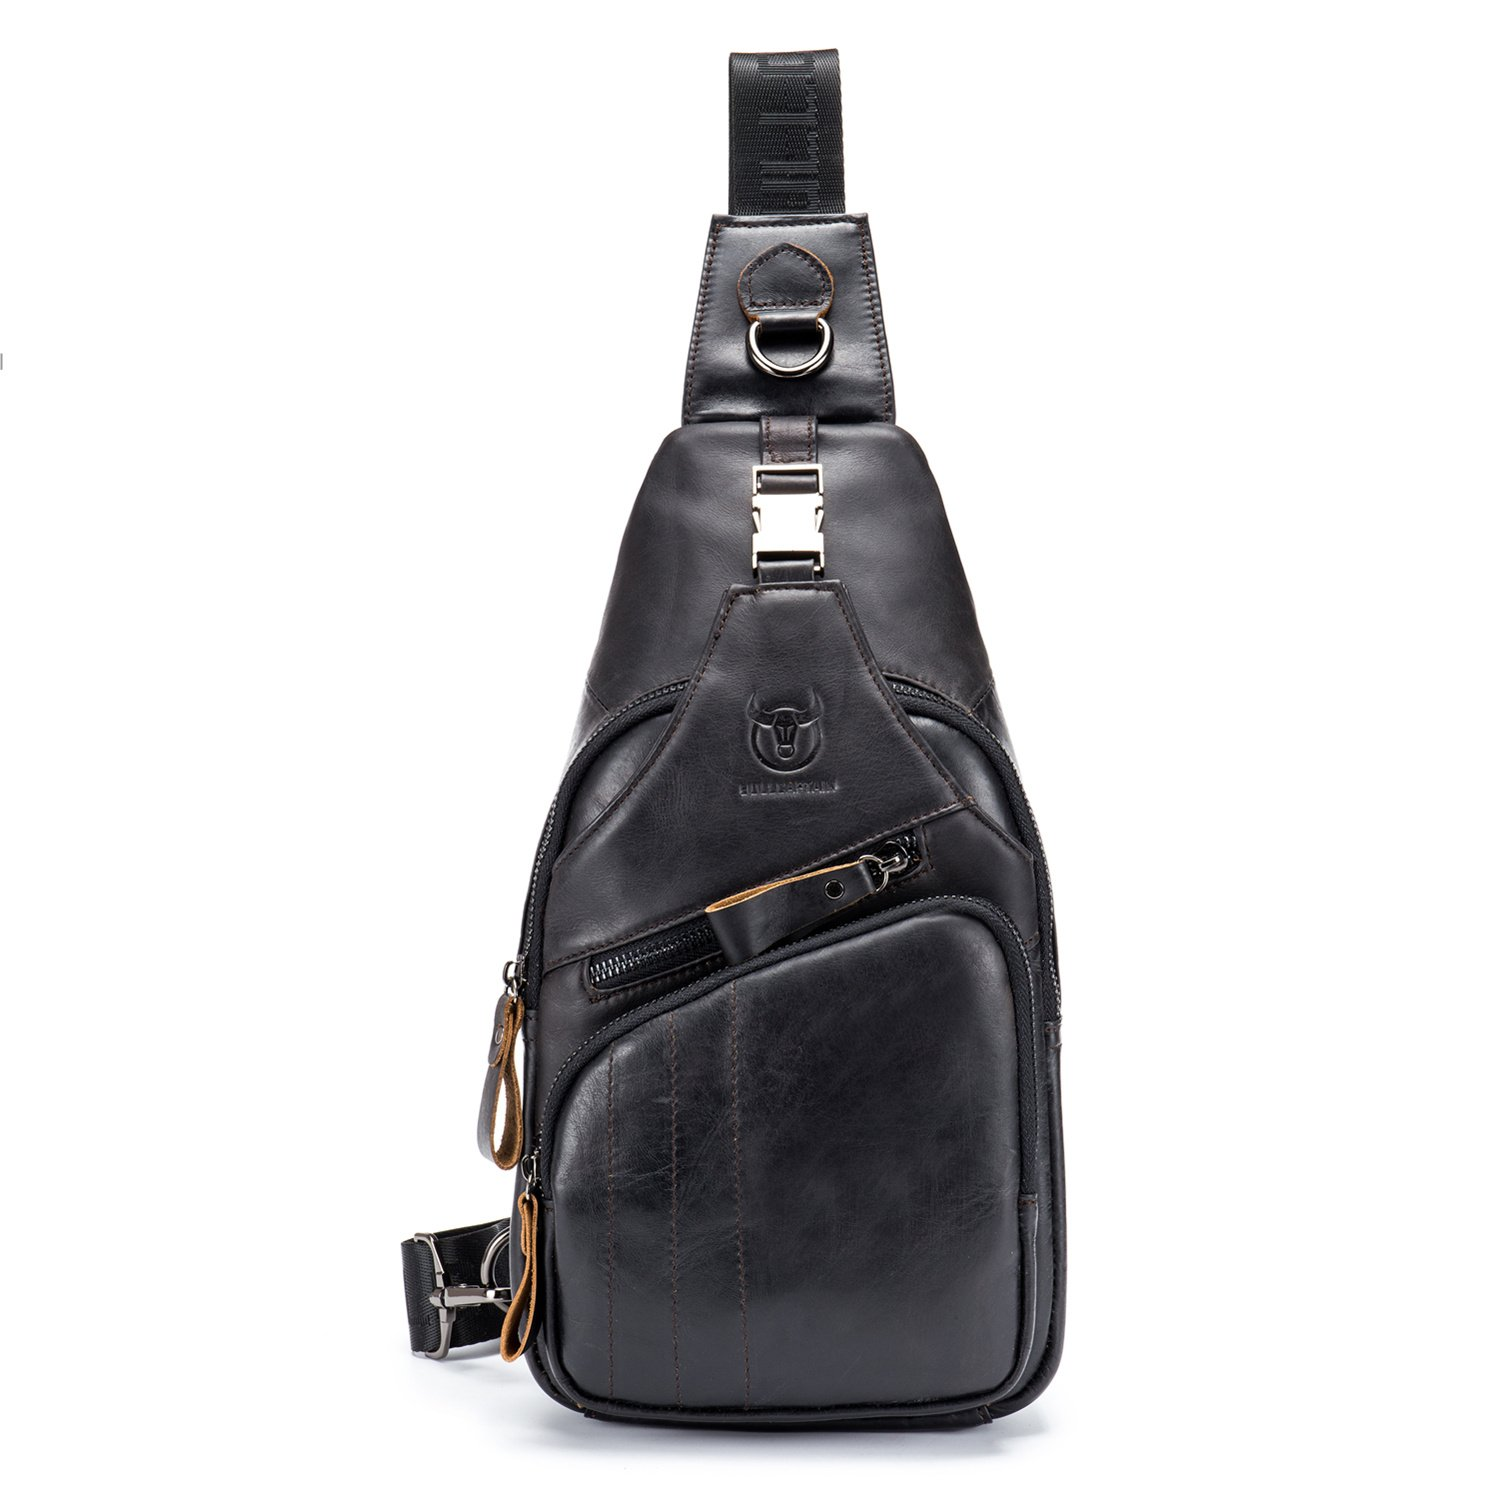 BULL CAPTAIN Shoulder Backpack Casual Cross Body Bag Big Size Genuine Leather 9.7 inch Ipad Pro Pack Travel Sling Bag XB-105 (Black, Small)